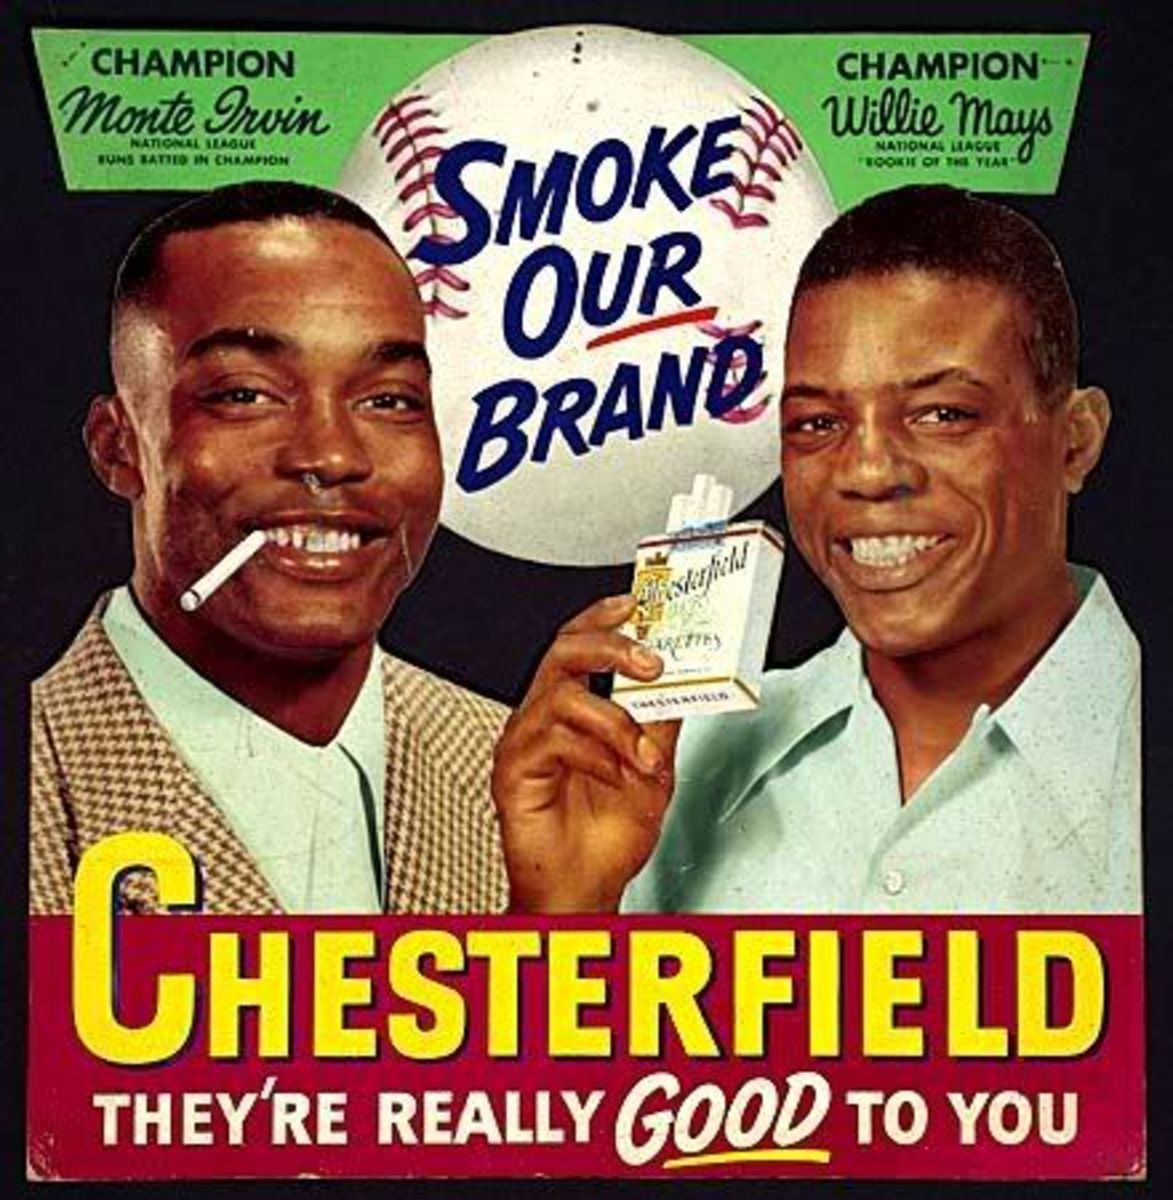 Mays and Irvin in a 1951 cigarette ad. They remained close friends throughout their careers, even opening up a liquor store in Brooklyn.